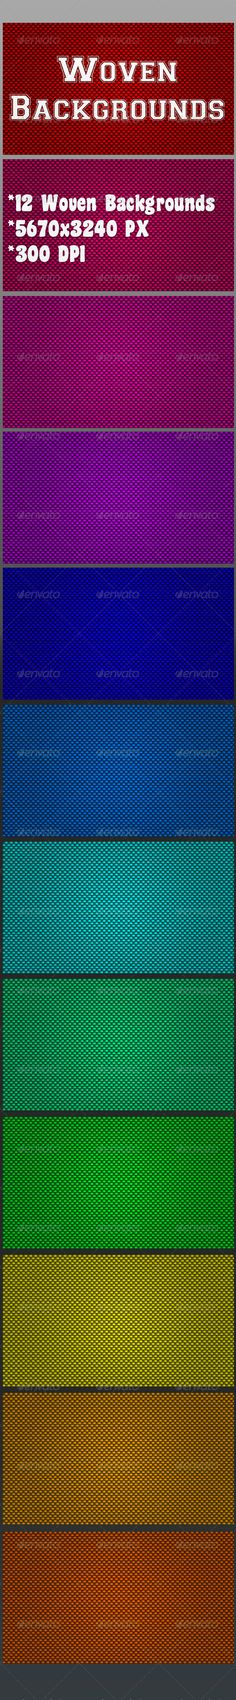 Woven Backgrounds by ClauGabriel *12 Woven Backgrounds *5760脳3240 PX *300 DPI *JPEG